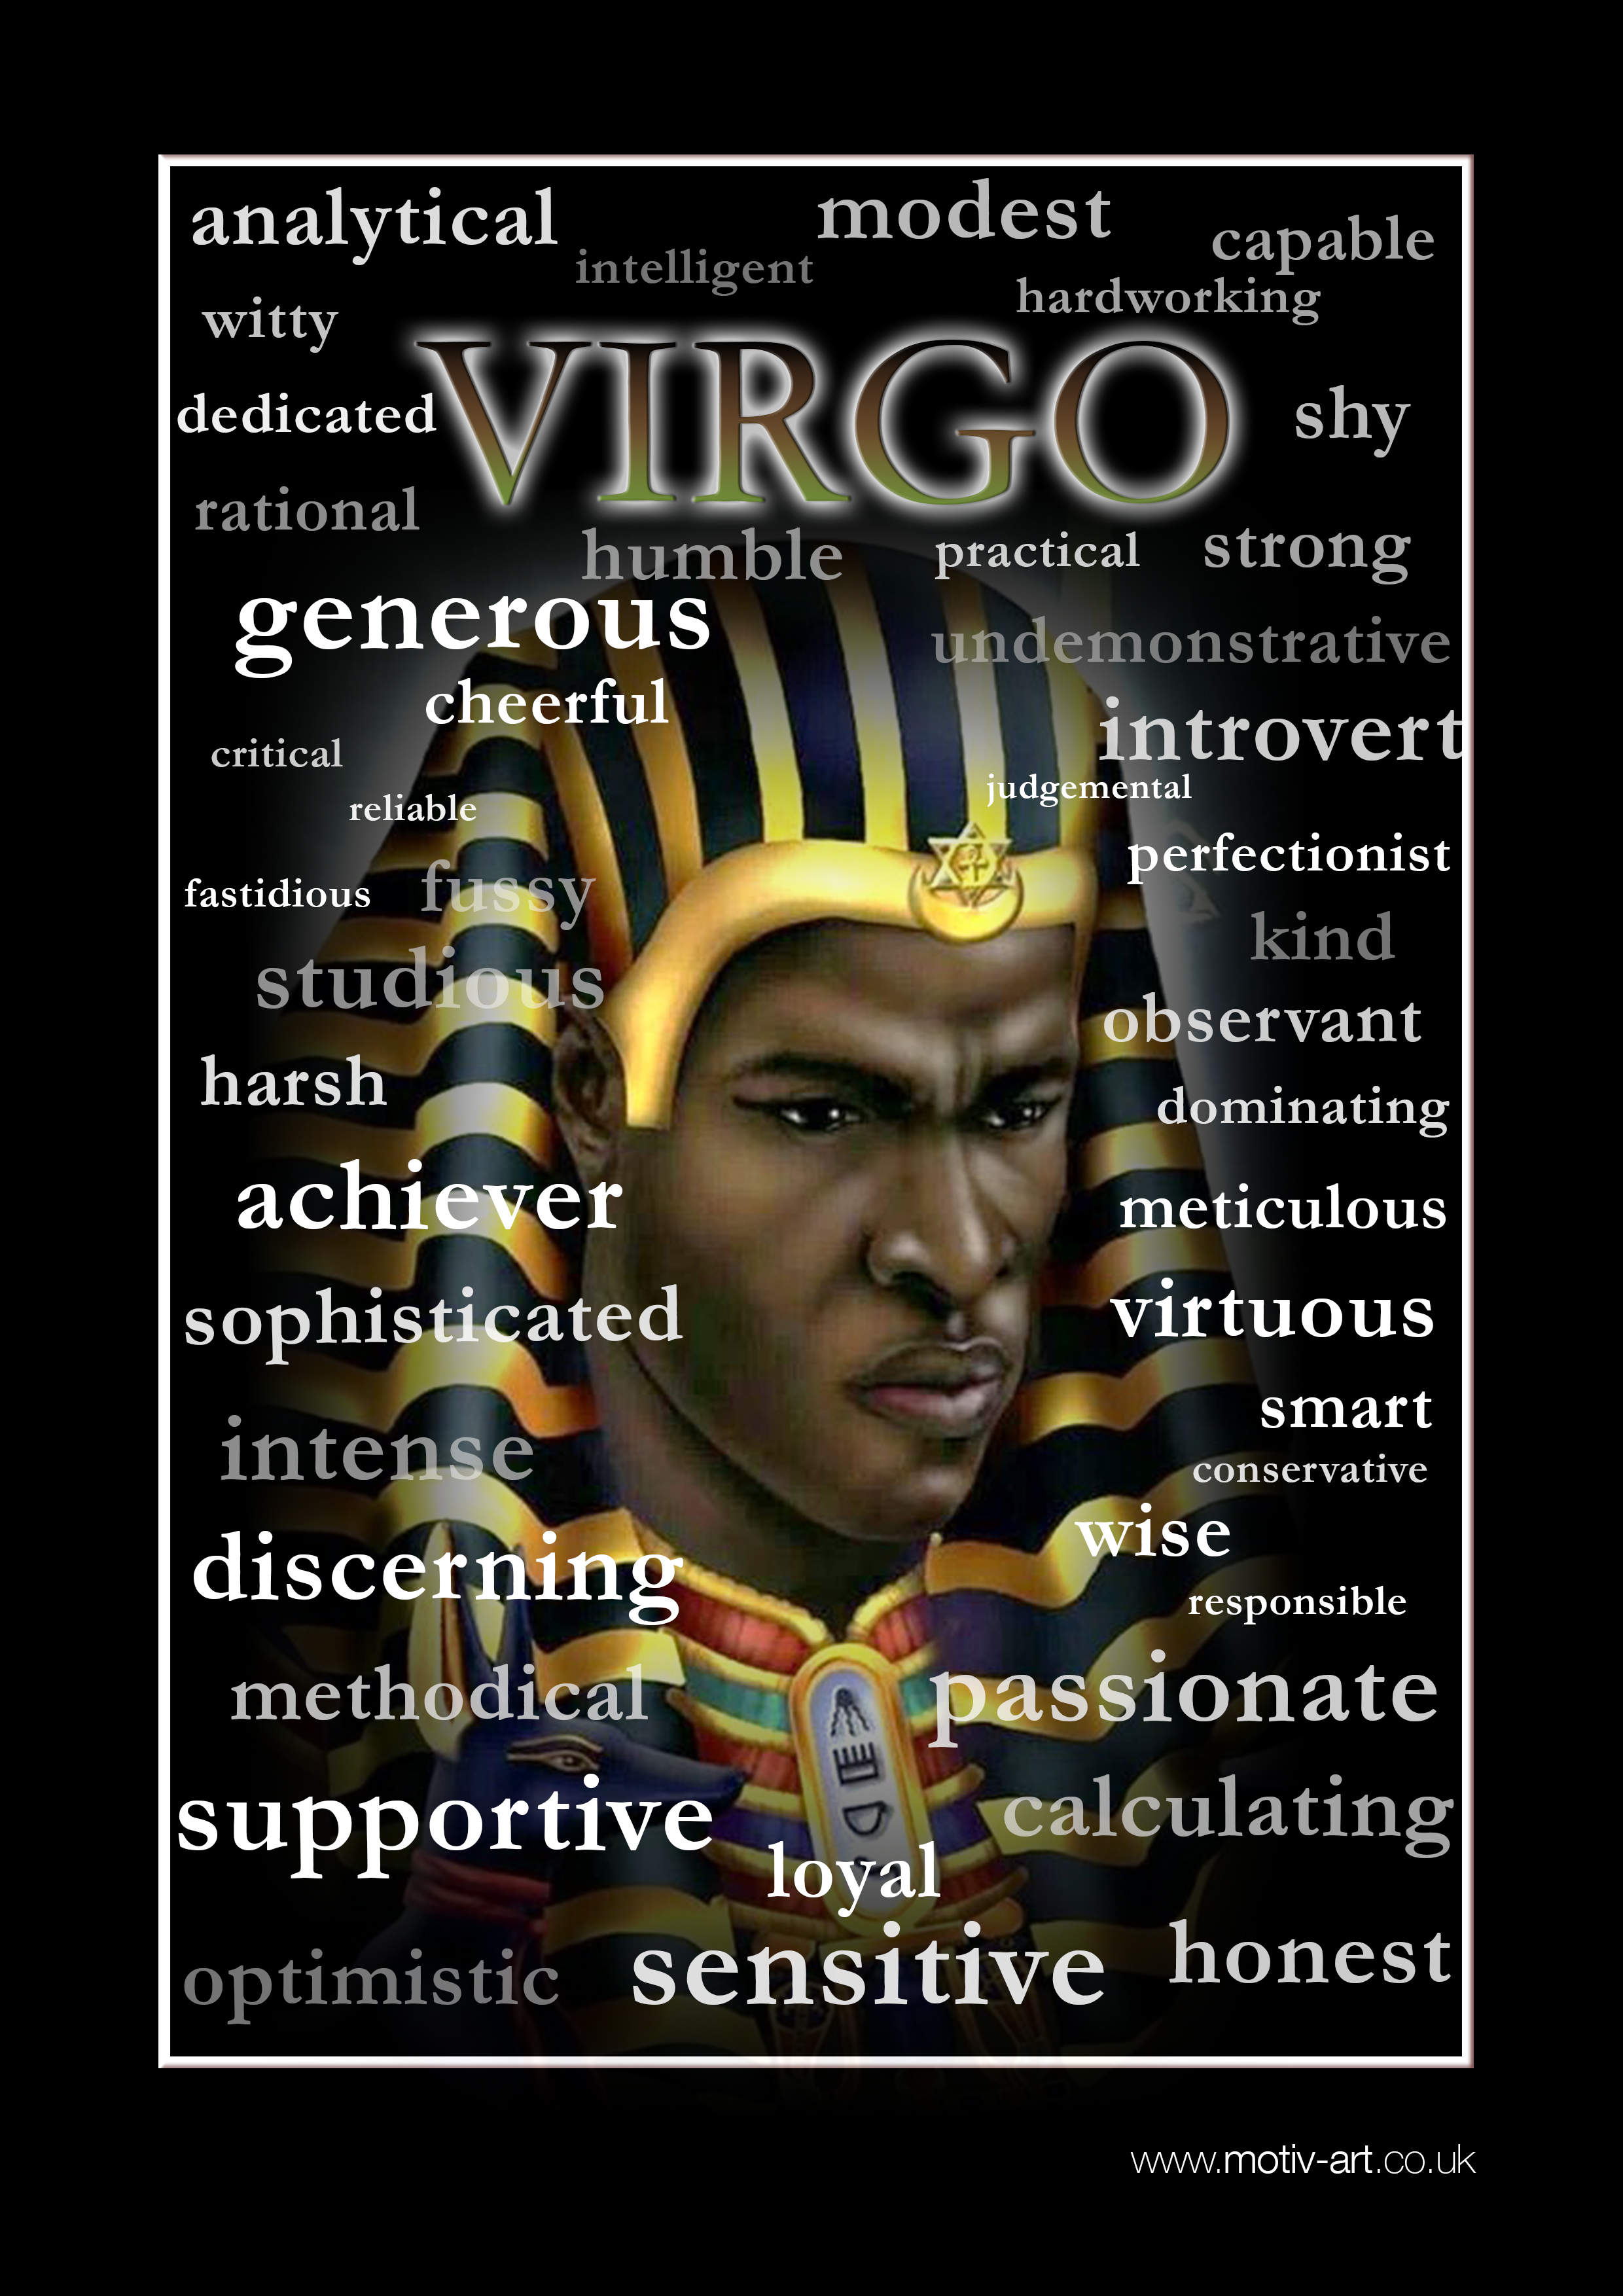 Virgo 22 Aug - 23 Sept